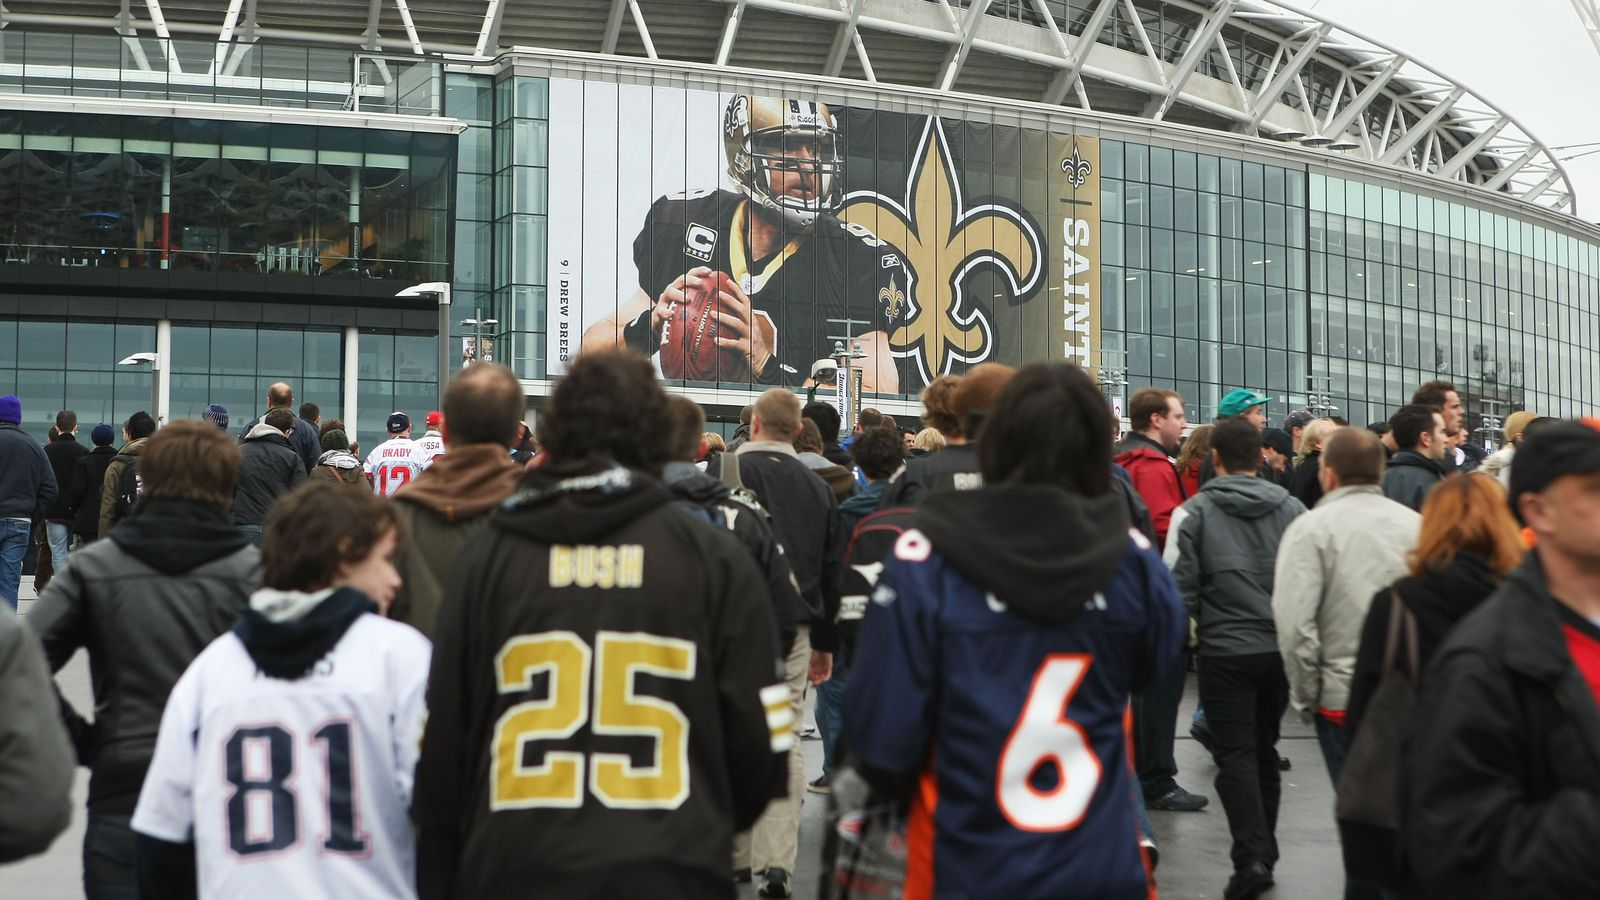 Saints Get 11th Practice Squad Player In Nfl International